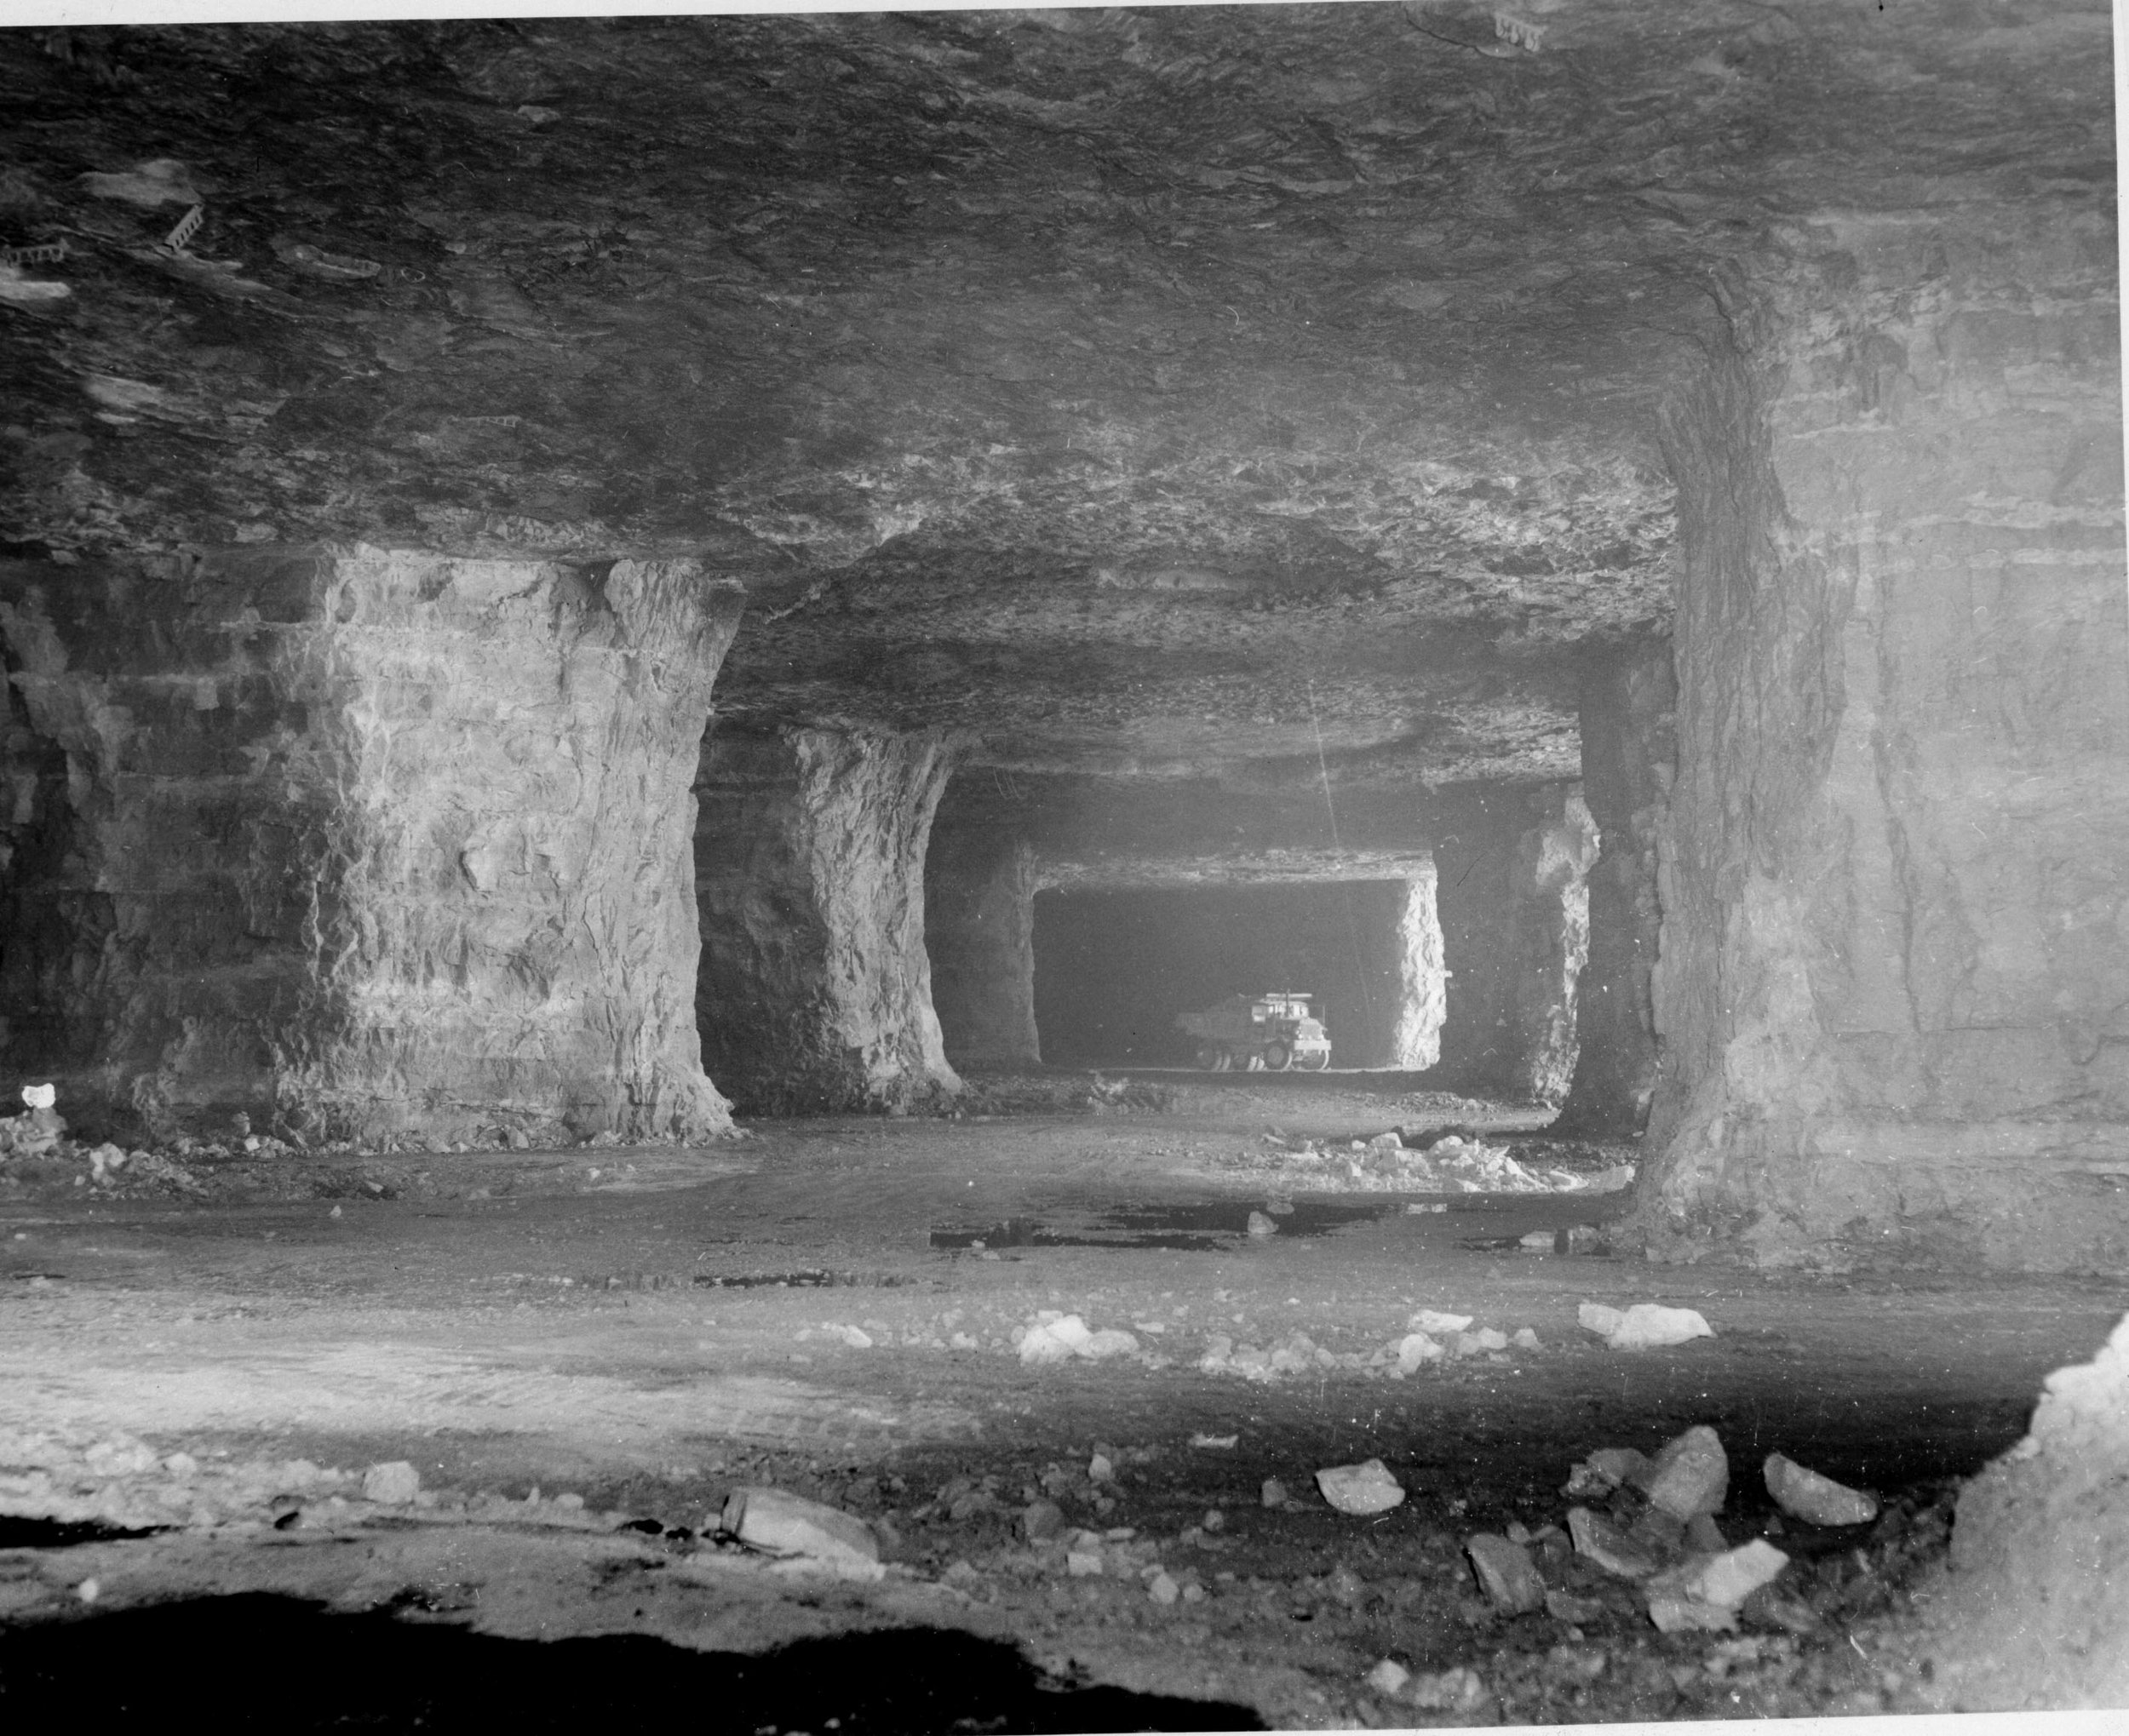 By 1960, enough area had been mined to build the first 250,000 square feet of warehouse underground while still allowing for mining to continue.